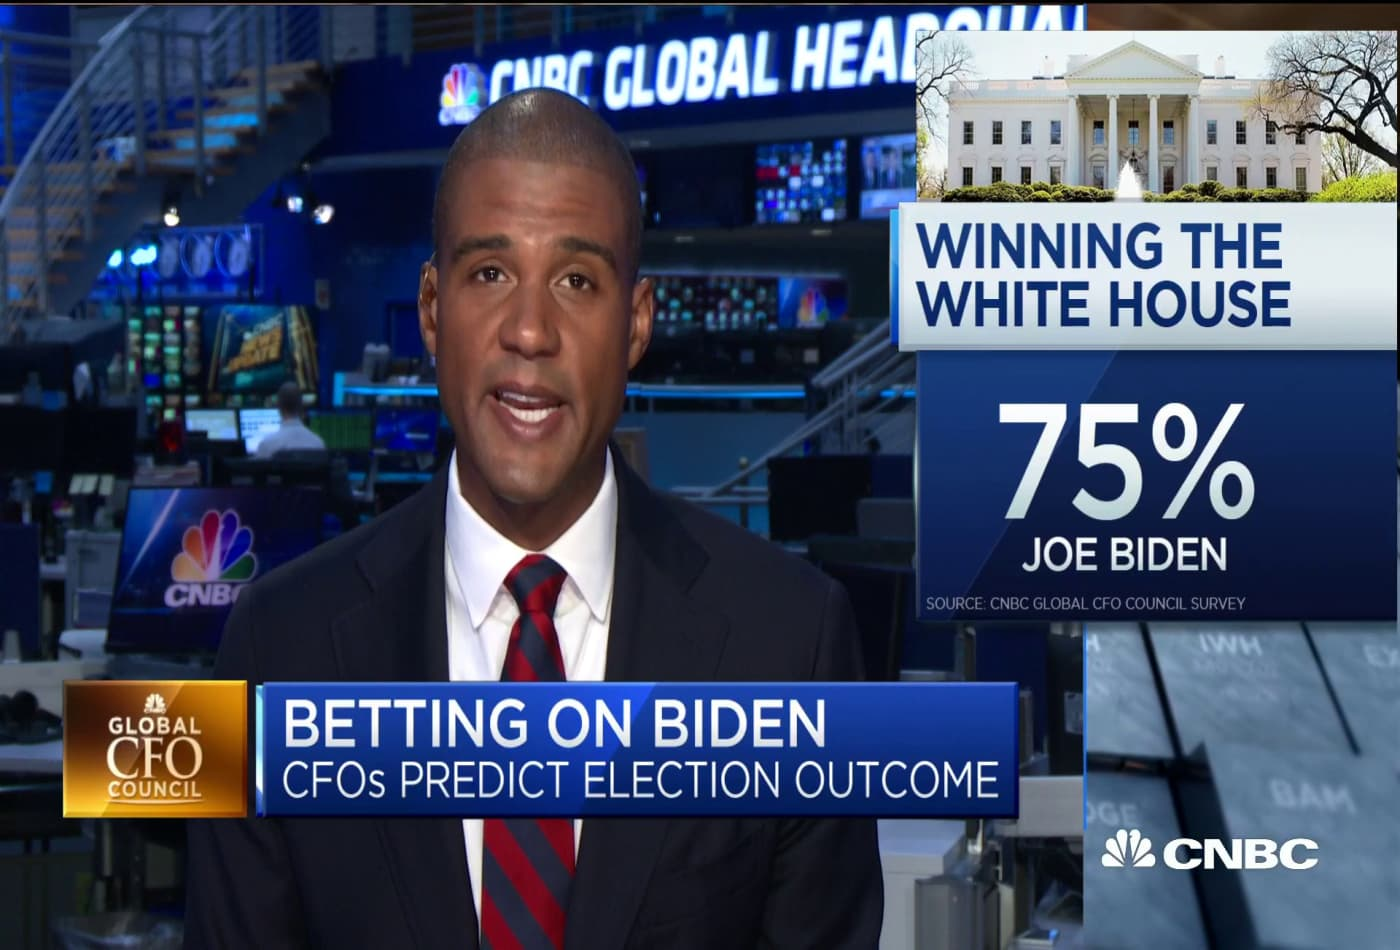 75 percent of CFOs believe Joe Biden will win the election